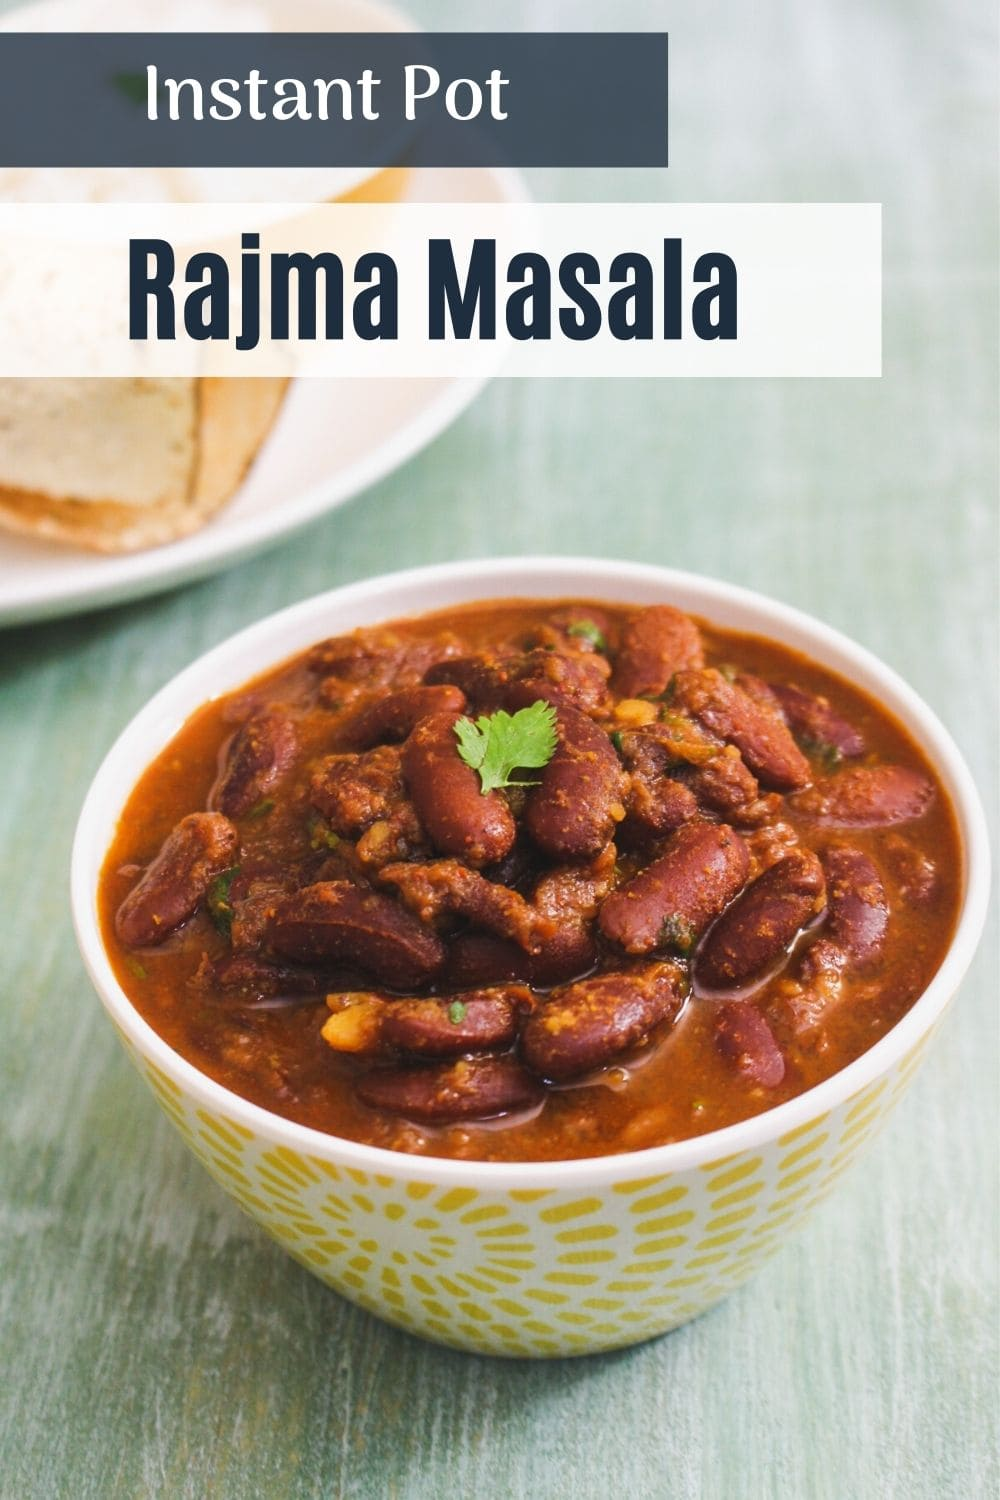 Rajma curry in a bowl with a garnish of cilantro, text on the image for pinterest.